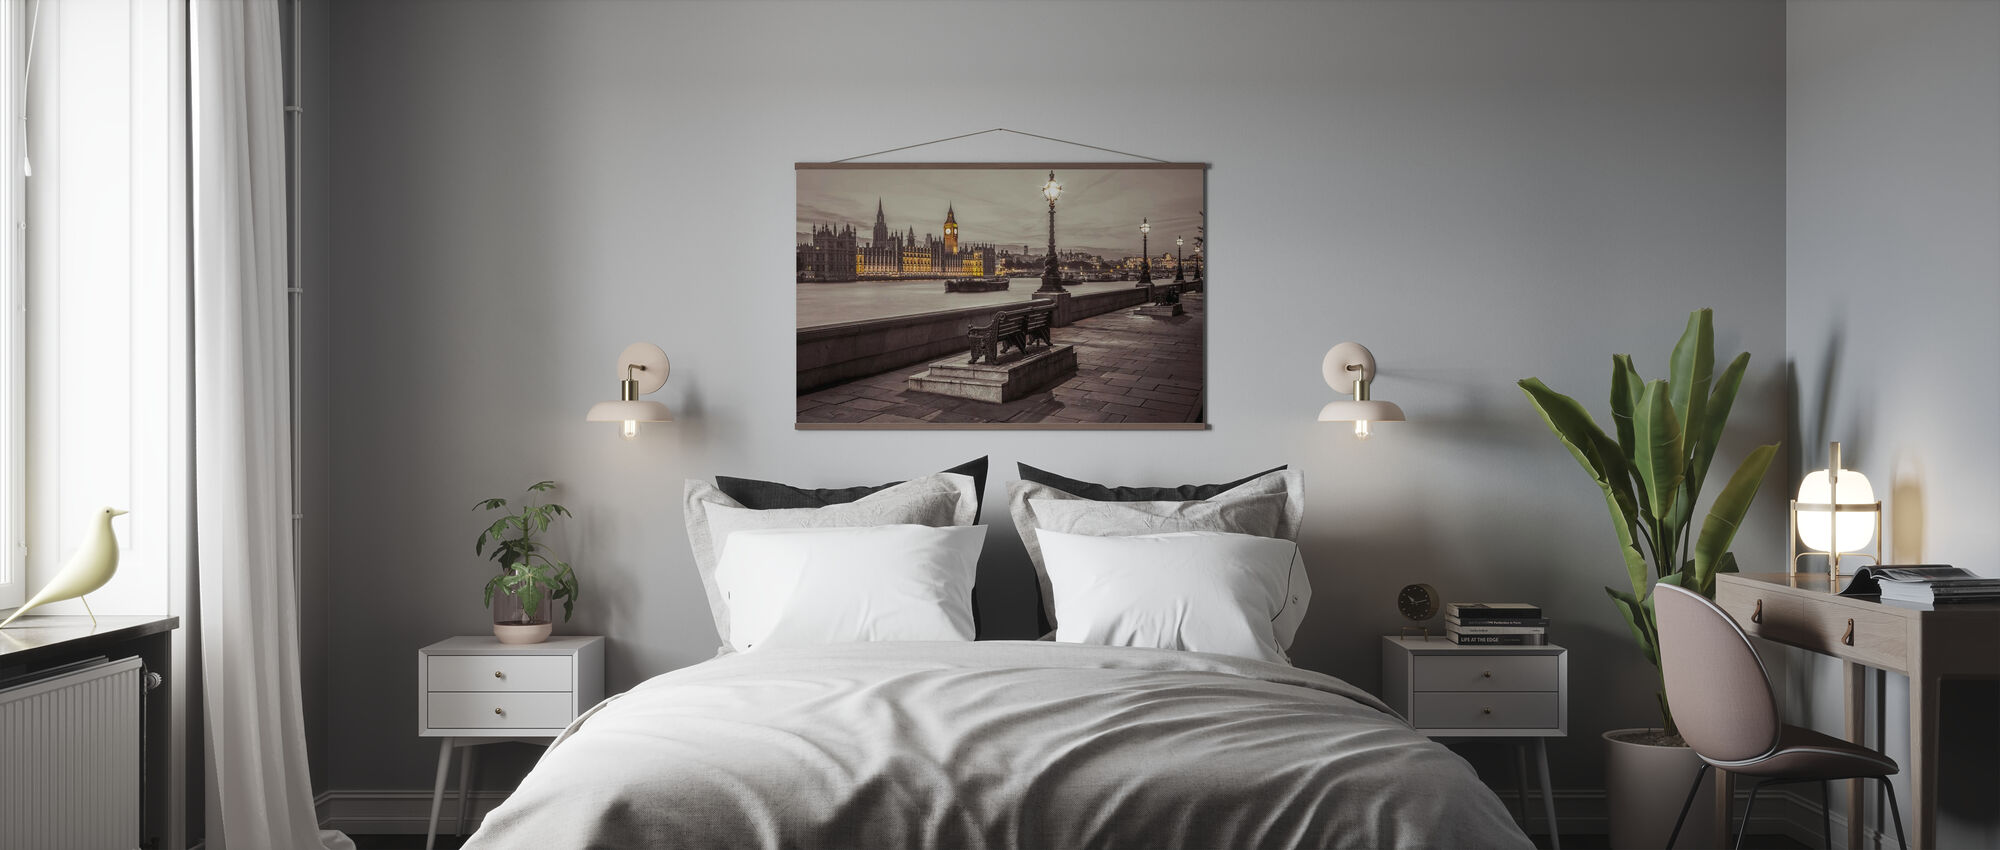 London by Night - Poster - Bedroom